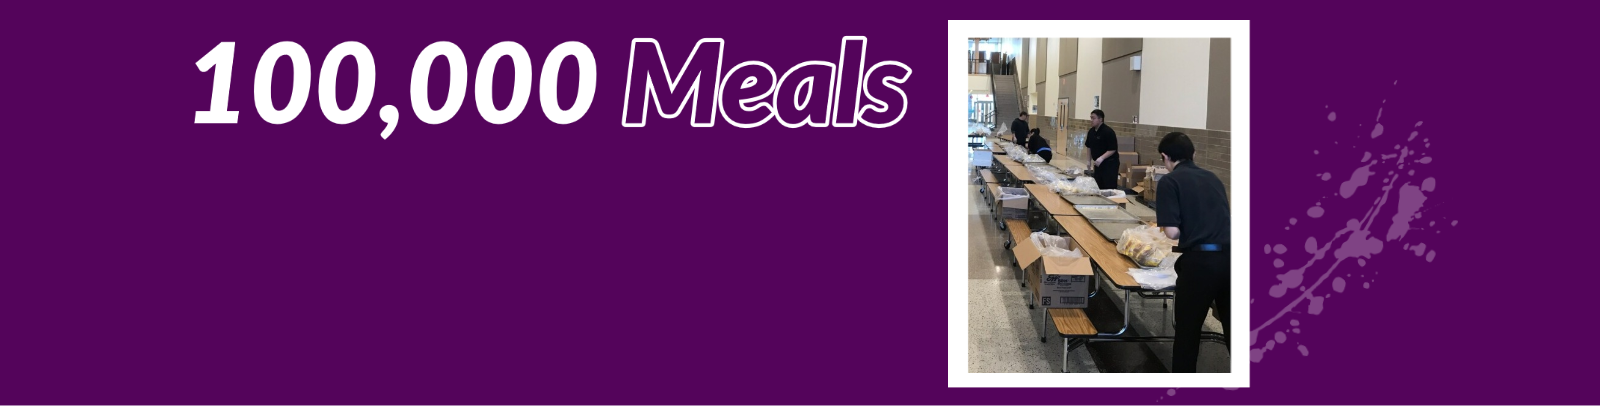 covid meals banner.png